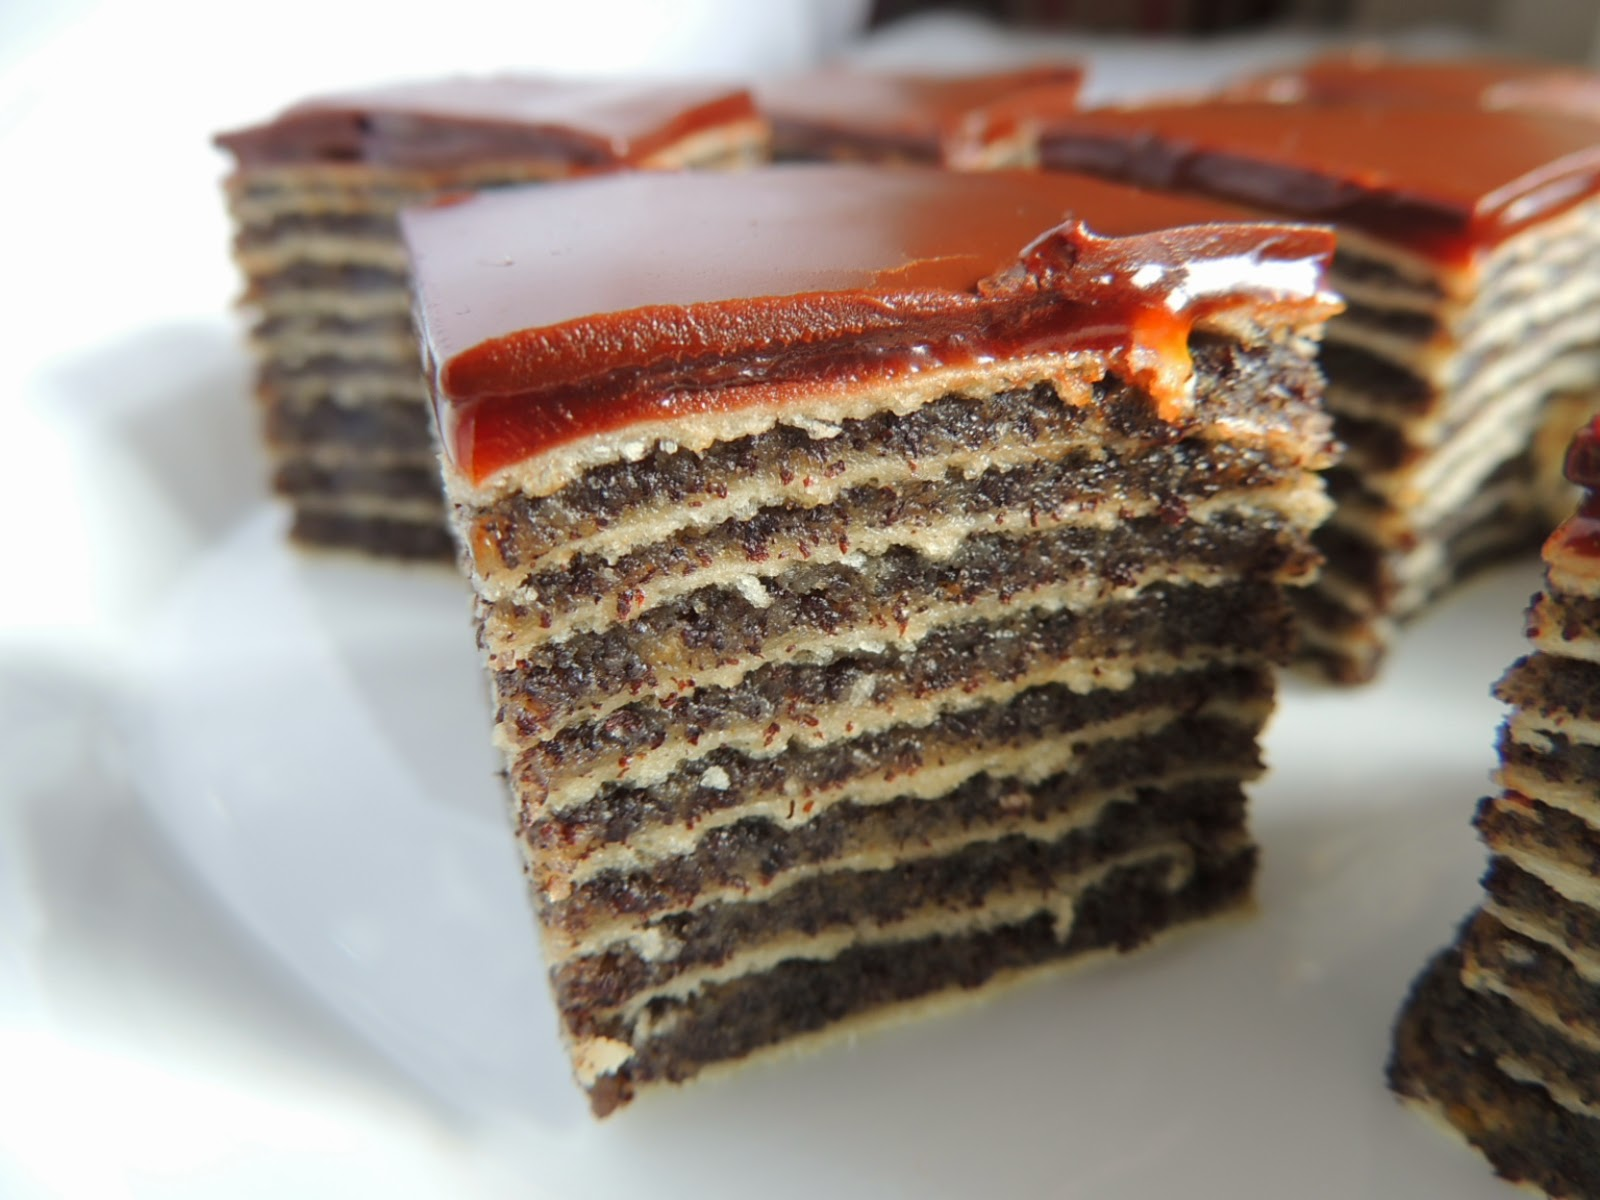 Unbaked poppy seeds cake with readymade crusts and biscuits